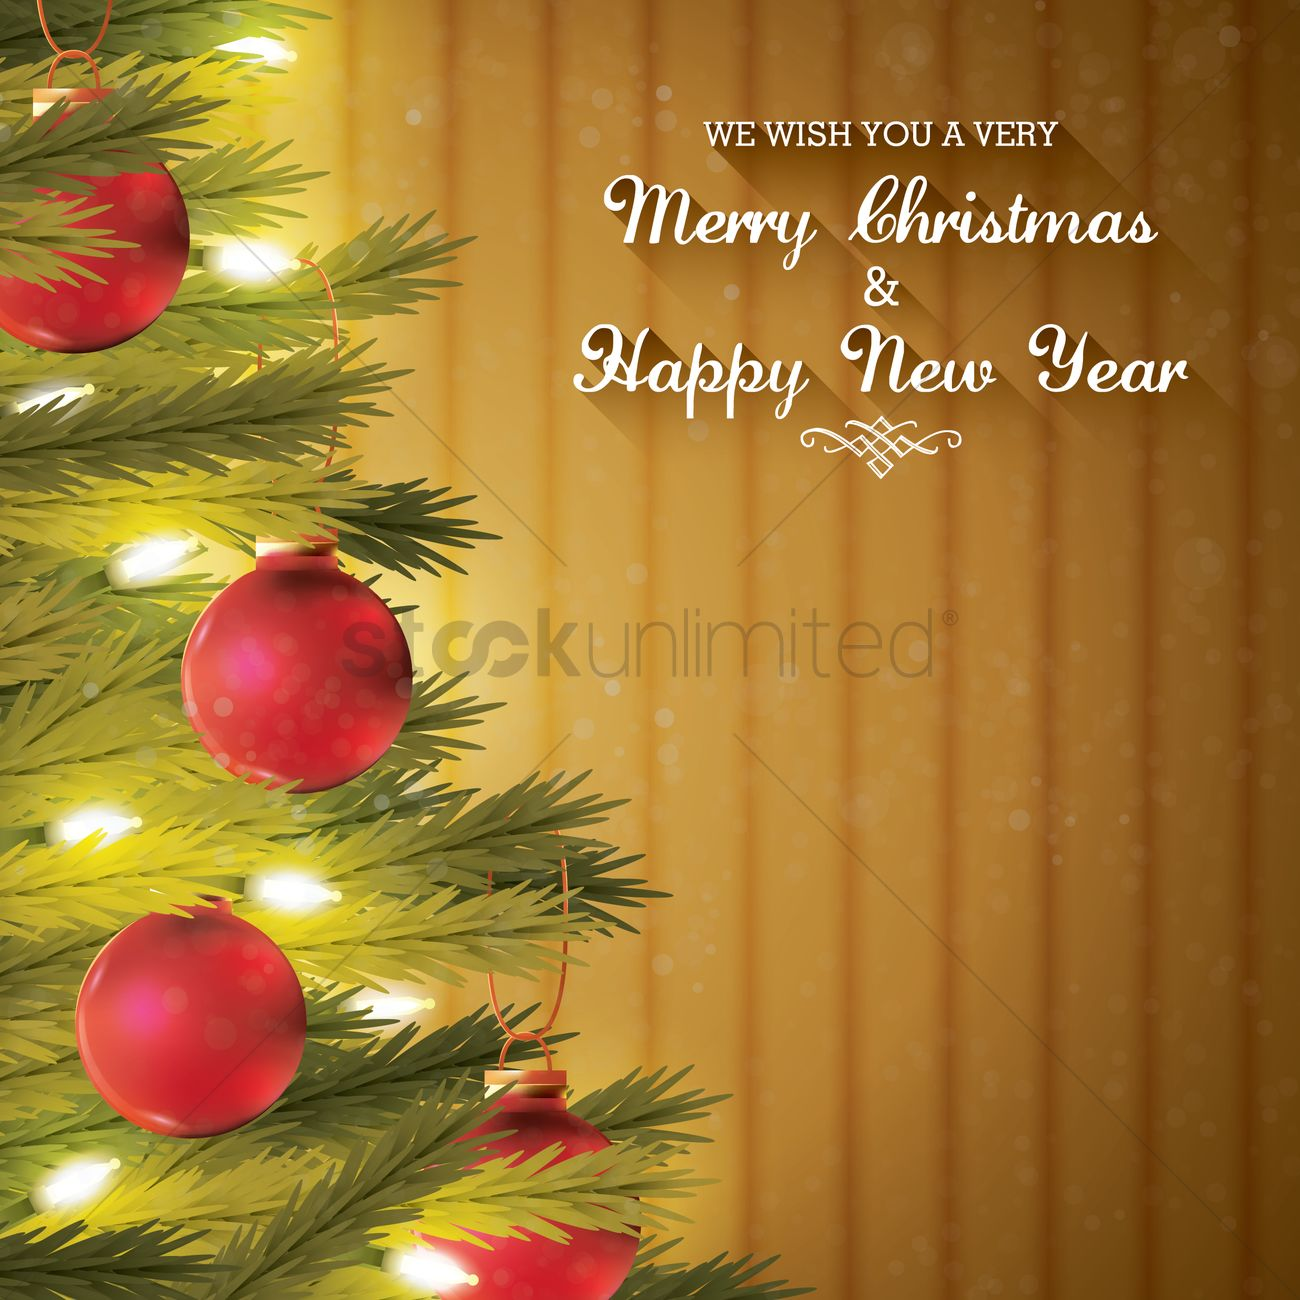 Christmas and new year greetings vector image 1626365 stockunlimited christmas and new year greetings vector graphic kristyandbryce Images